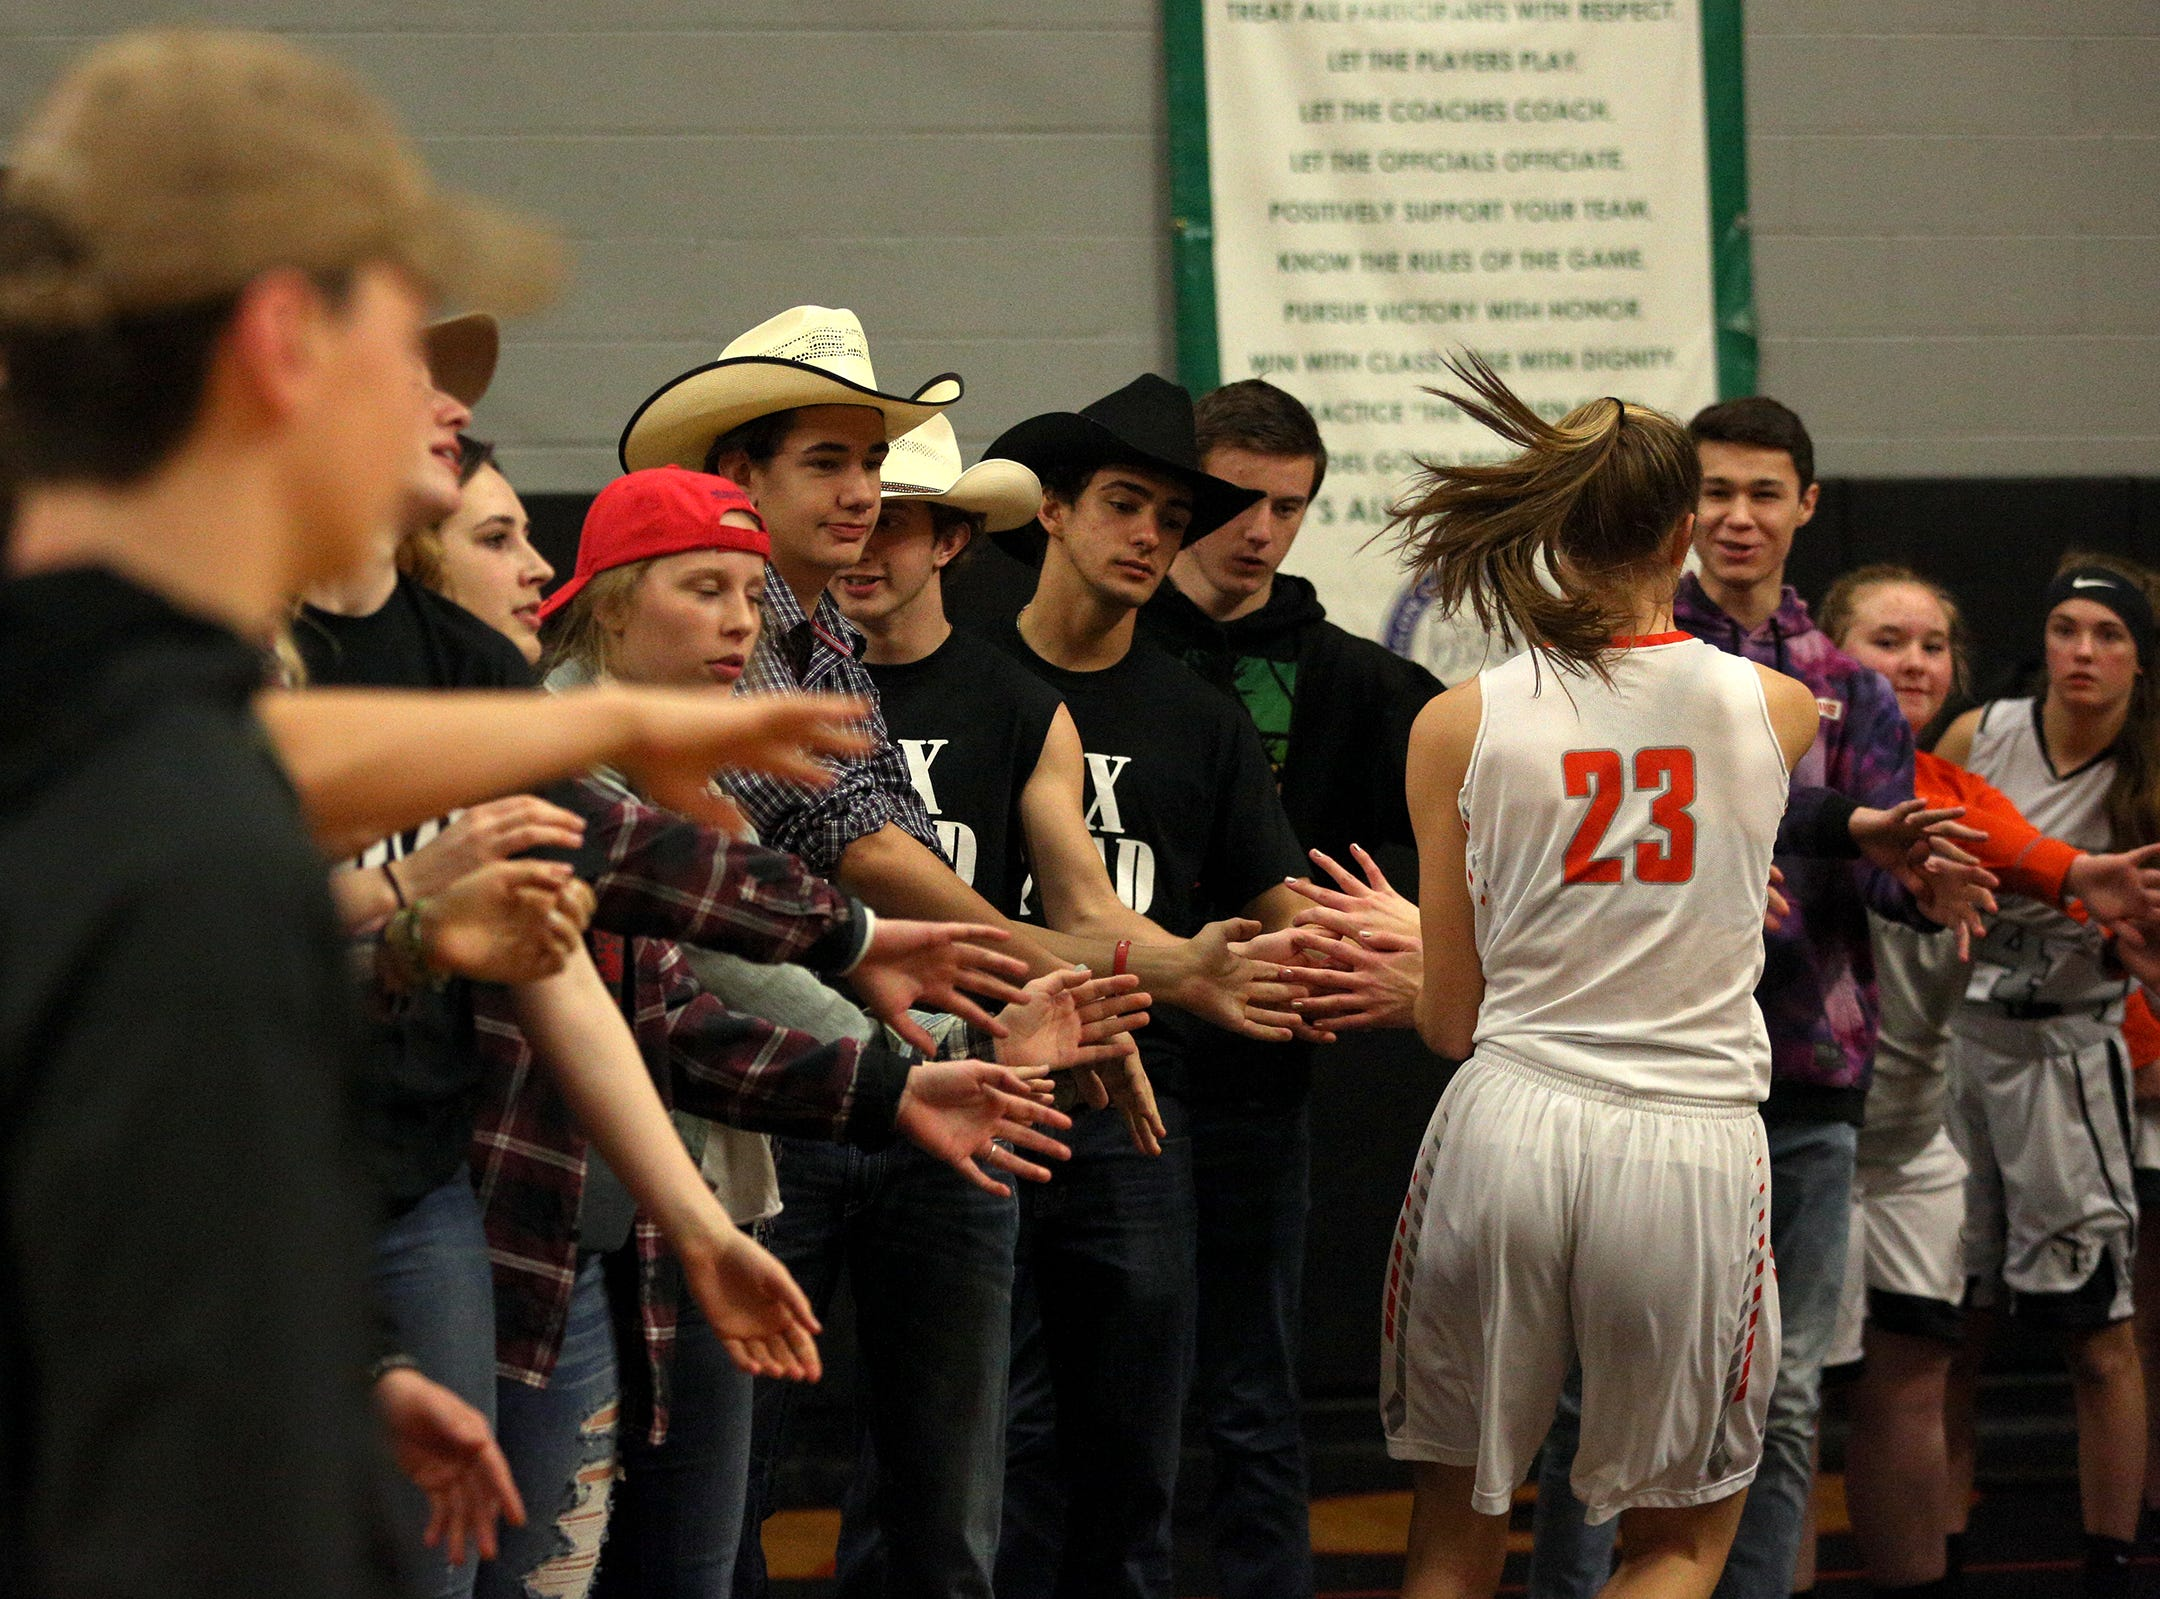 Silverton's Truitt Reilly high fives the student section before the Dallas High School vs. Silverton High School girls basketball game in Silverton on Tuesday, Dec. 8, 2019.